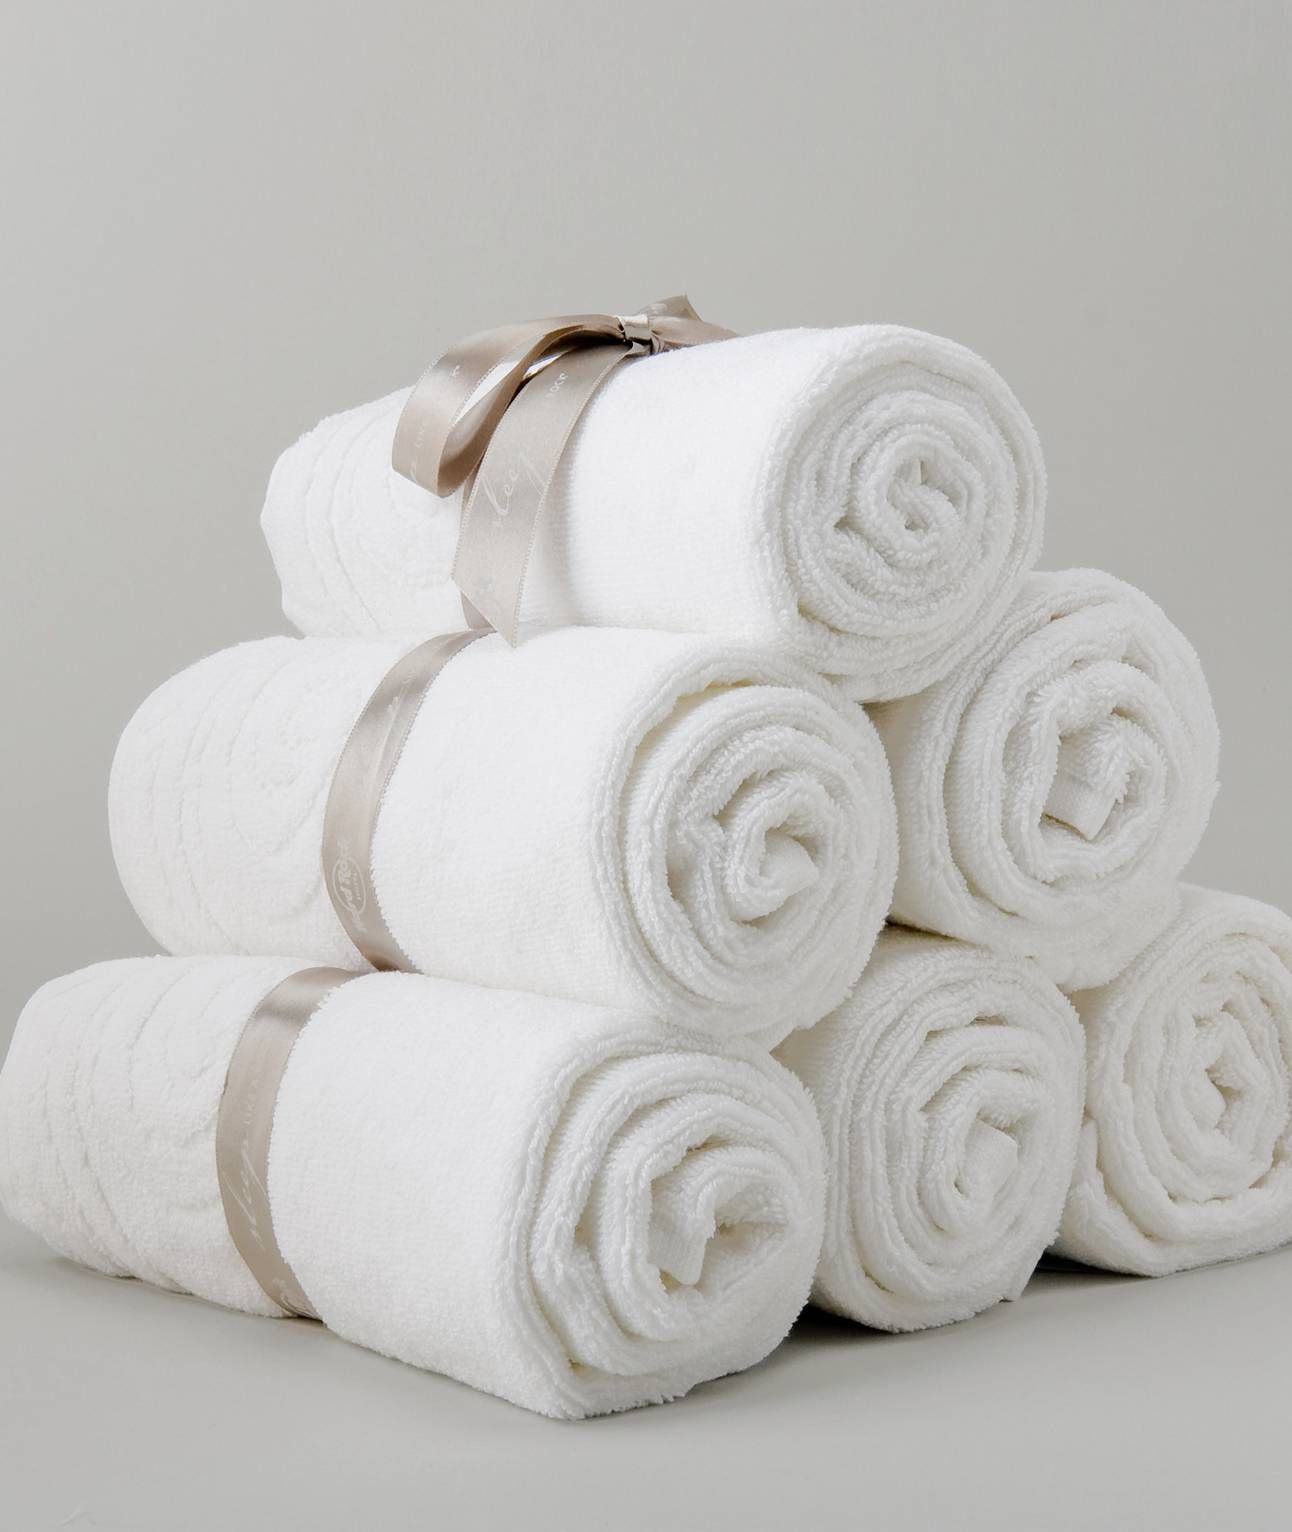 We Offer A Bulk Quantity Of Bath Towels In Wholesale Price With 100 Cotton Ring Spun Quality From Economy To Premi Towel White Bath Towels White Cotton Towels